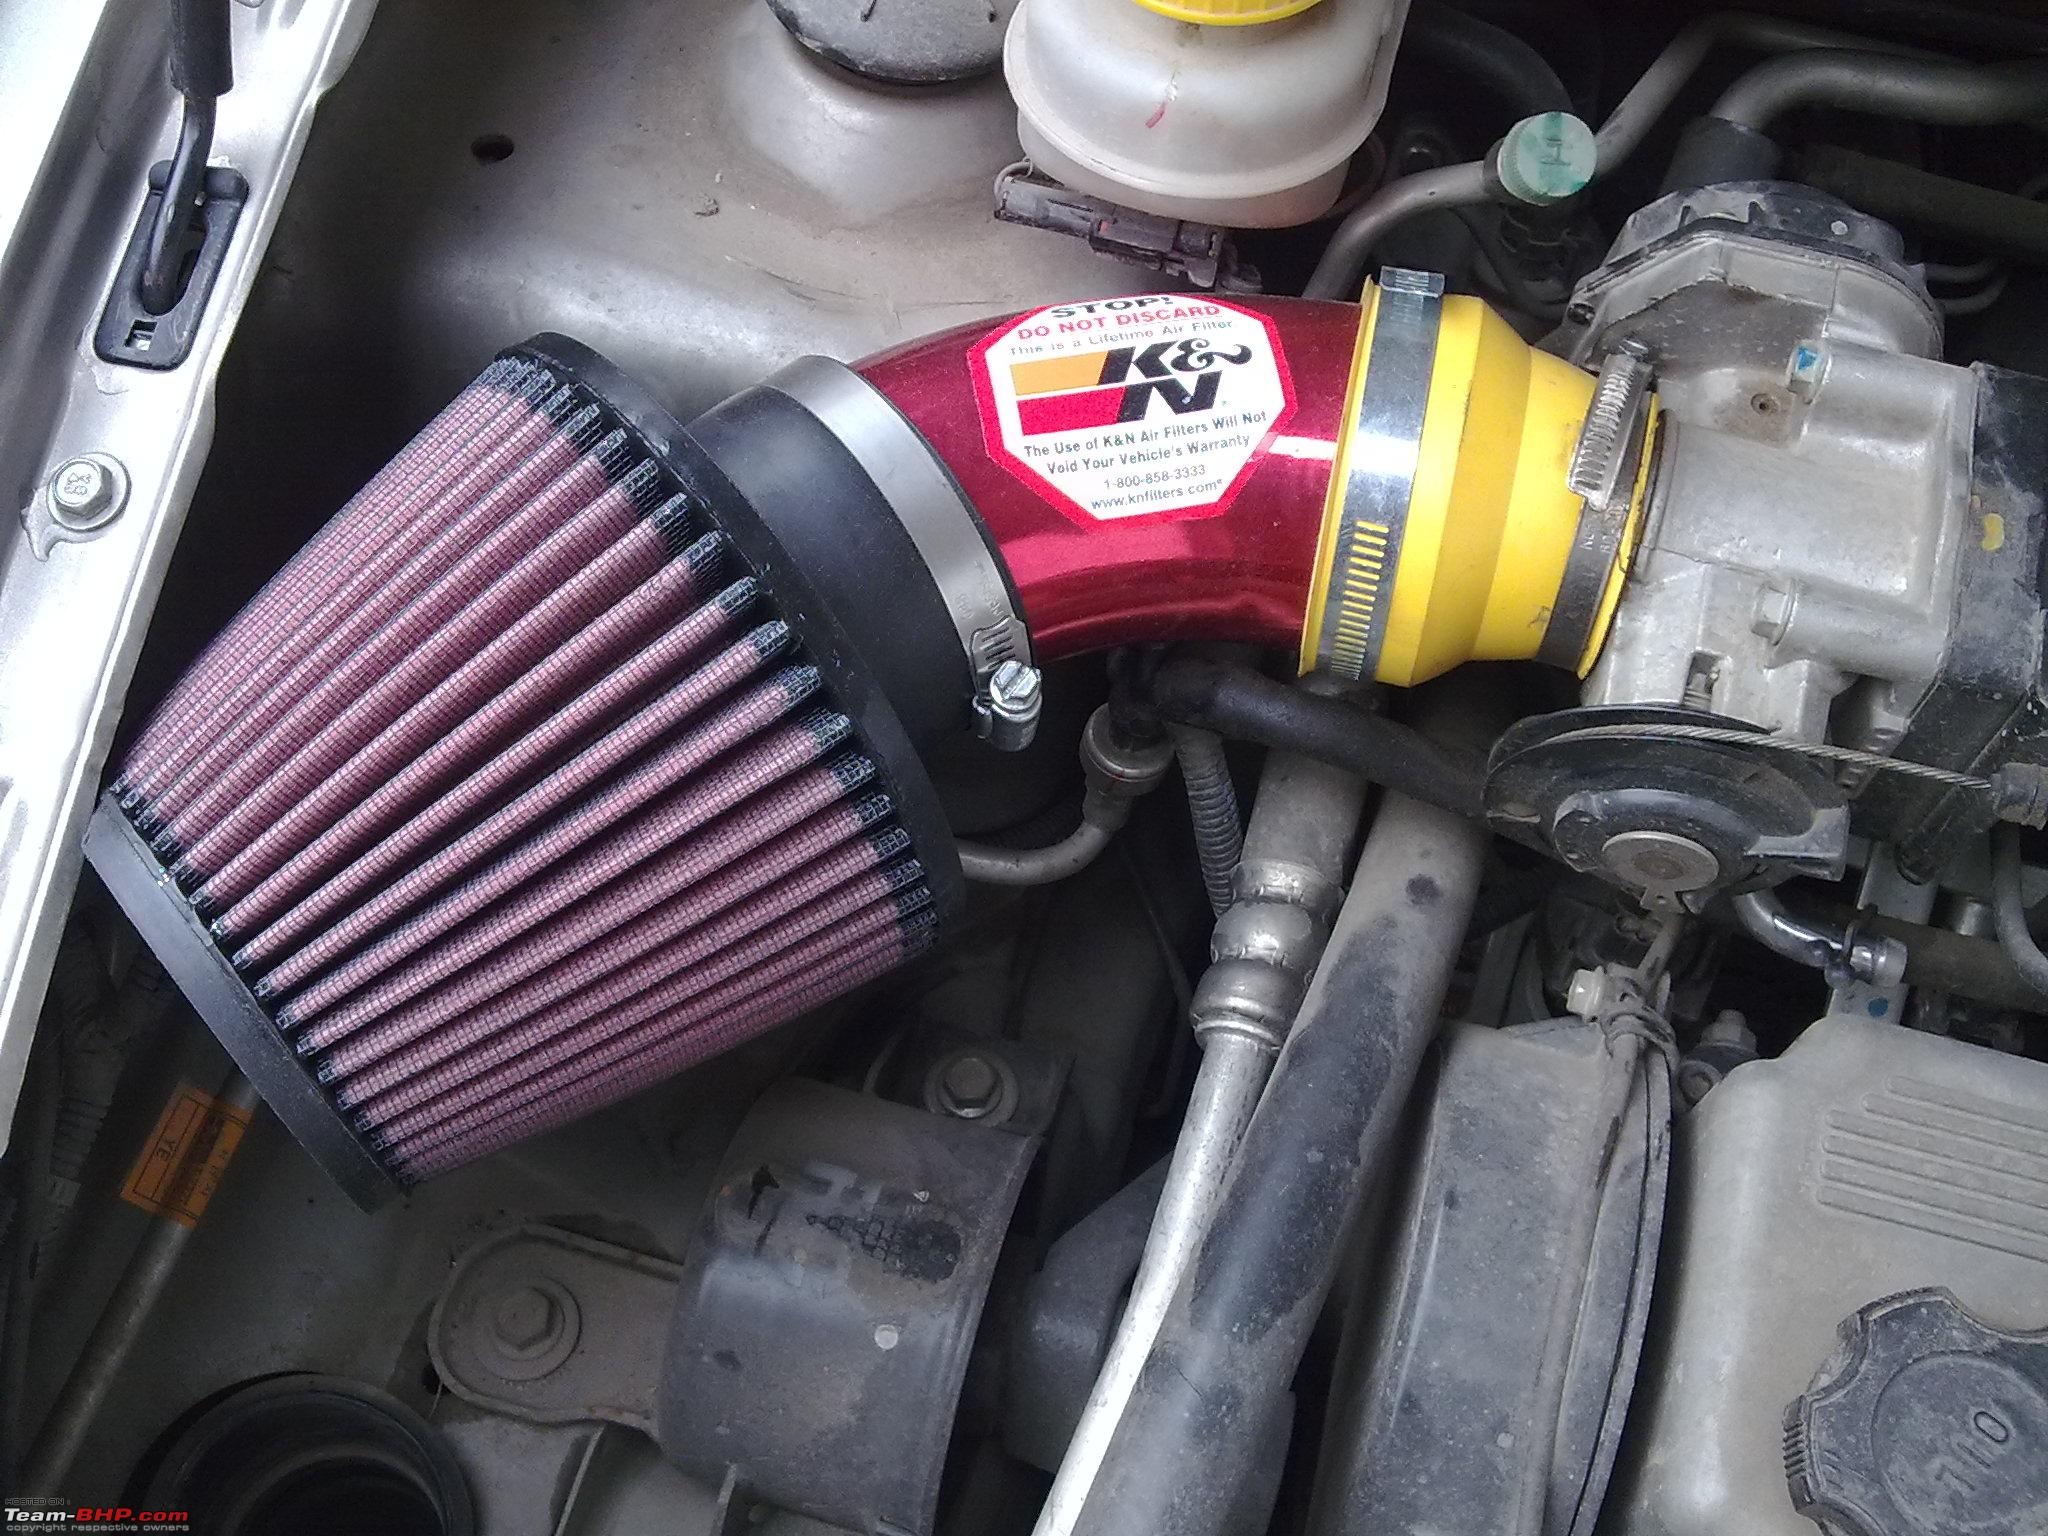 Aveo U-VA - looking for mods - Team-BHP Chevrolet Aveo Uva Spare Parts on chevrolet cruze, chevrolet tavera, chevrolet 2012 chevy equinox, chevrolet 2014 chevy impala, chevrolet models and prices,